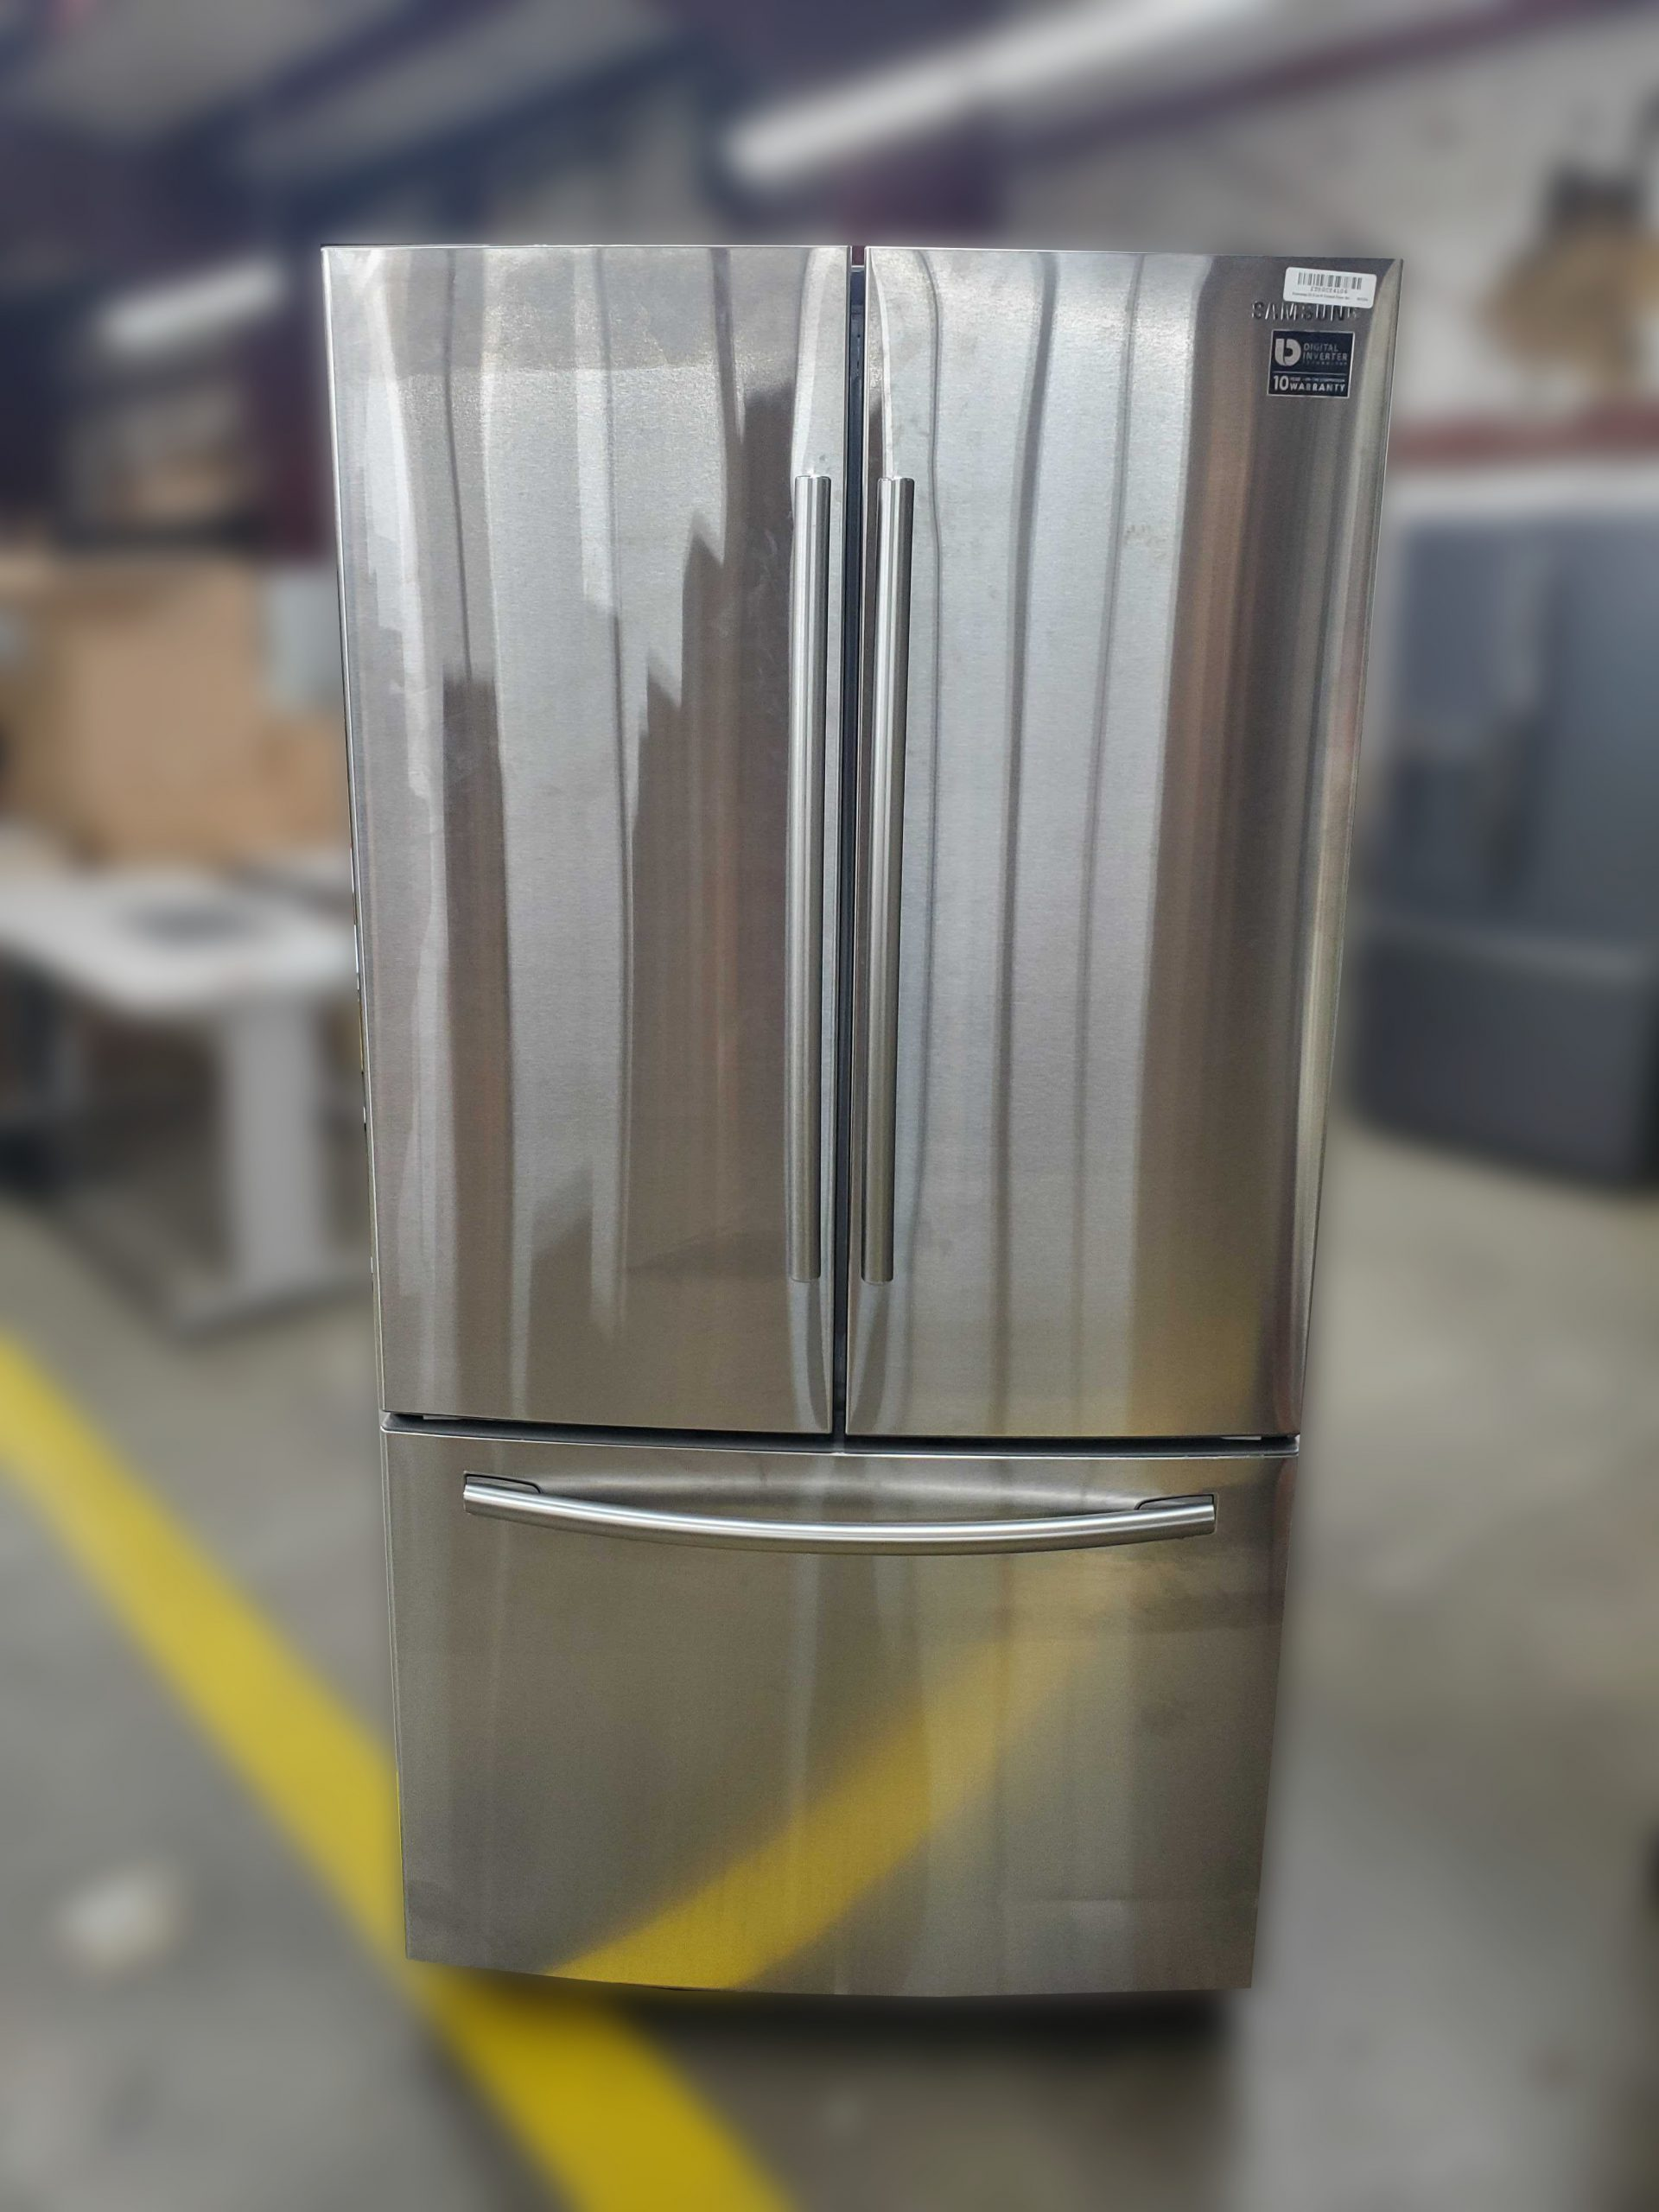 Samsung 25 5 Cu Ft French Door Refrigerator With Ice Maker Stainless Steel Appliance Repair Company In Birmingham Al